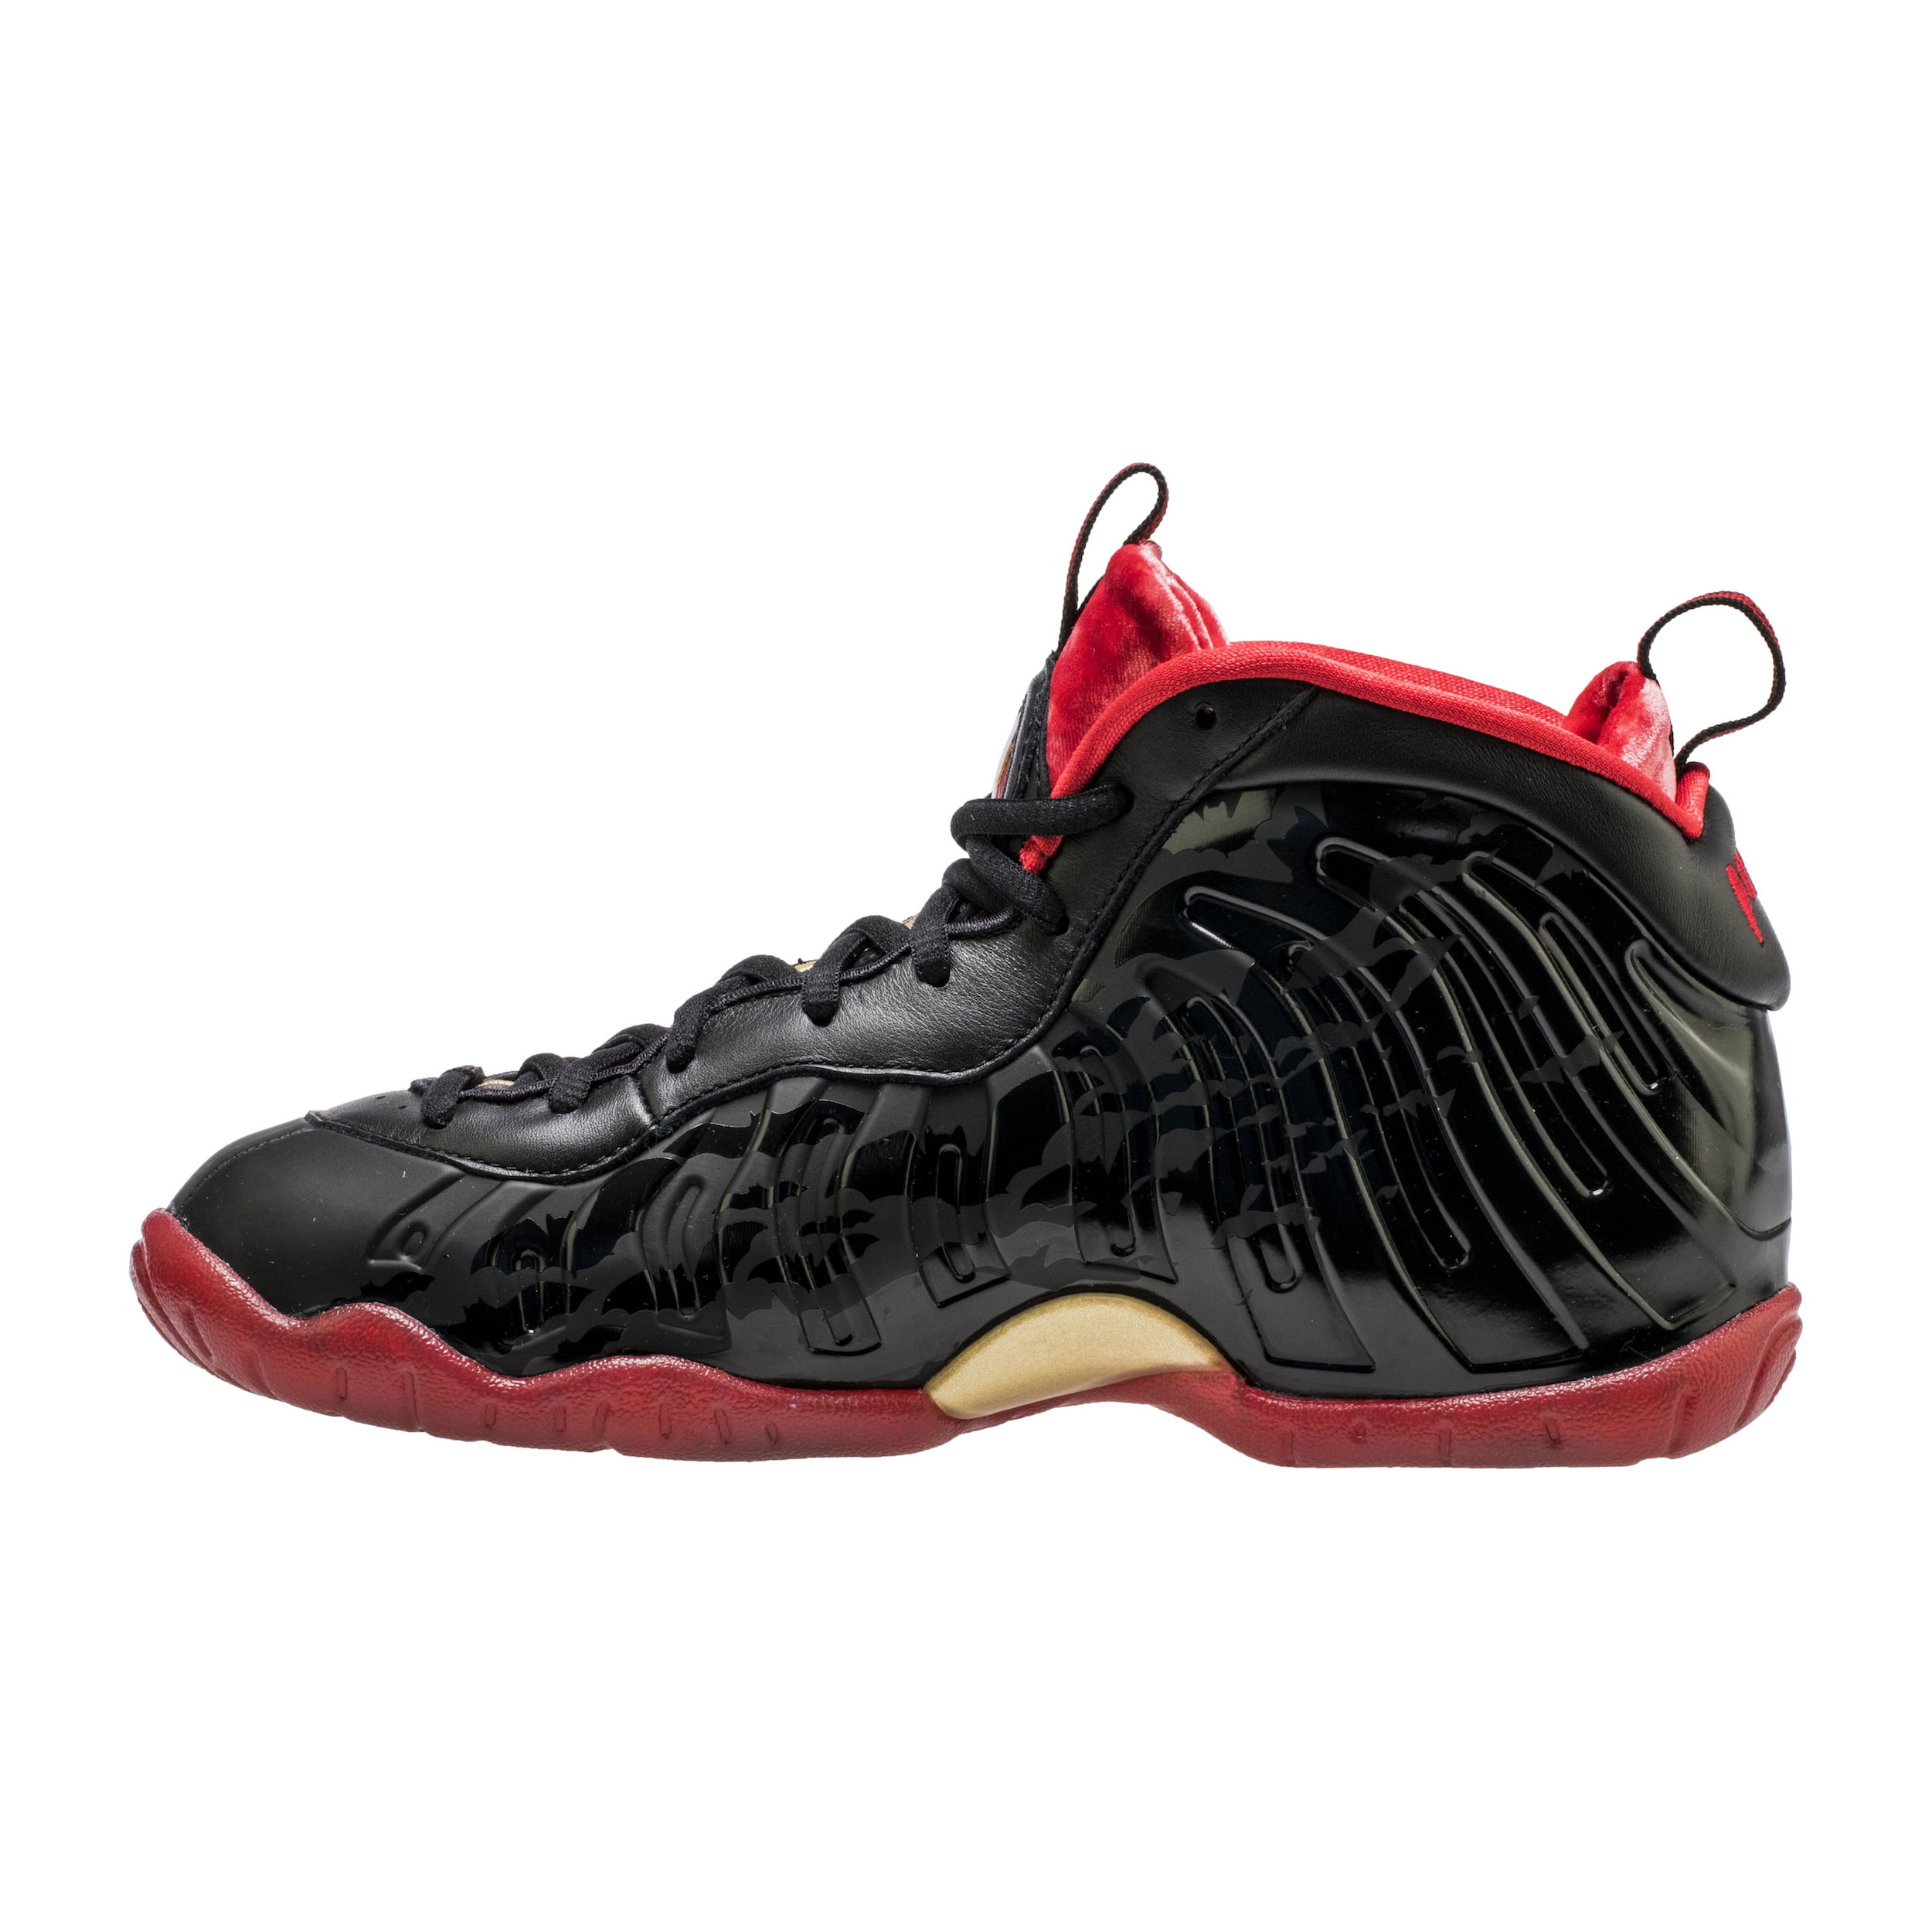 NIKE LIL FOAMPOSITE ONE QUICKSTRIKE GS 3